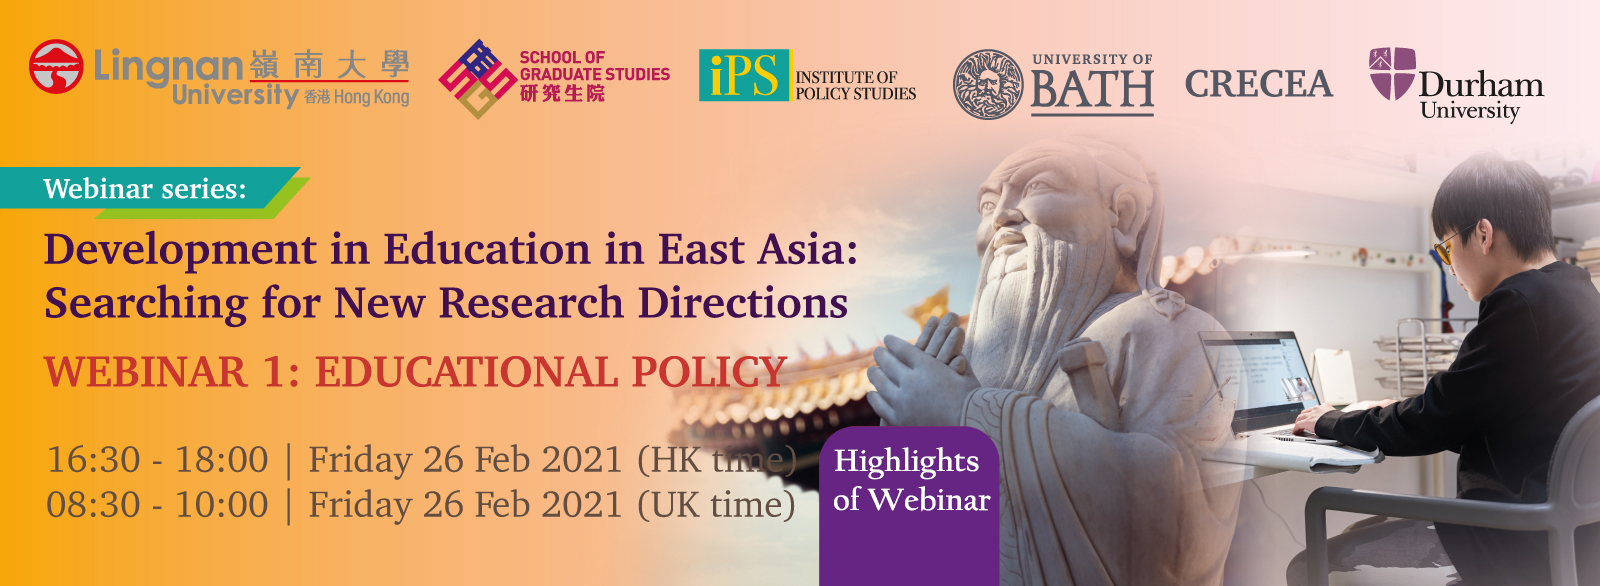 Development in Education in East Asia: Searching for New Research Directions-Webinar 1: Educational Policy